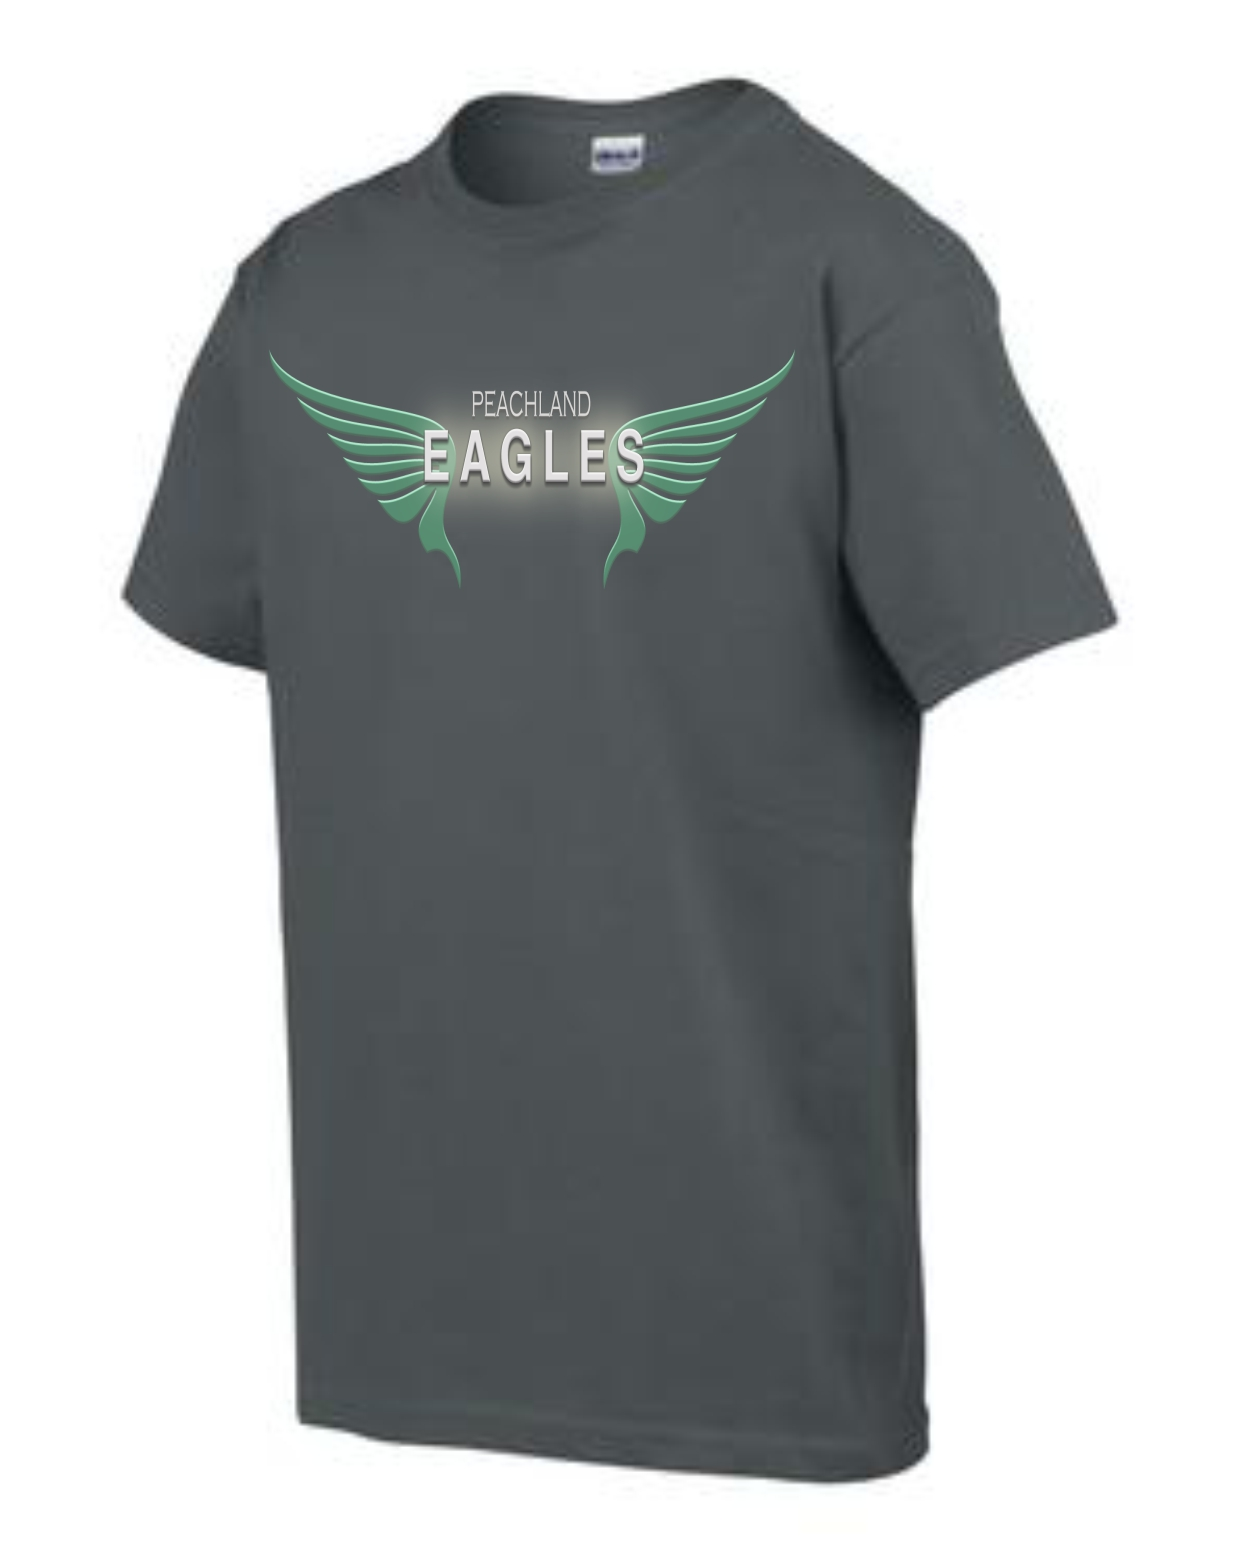 School T-shirts For Purchase